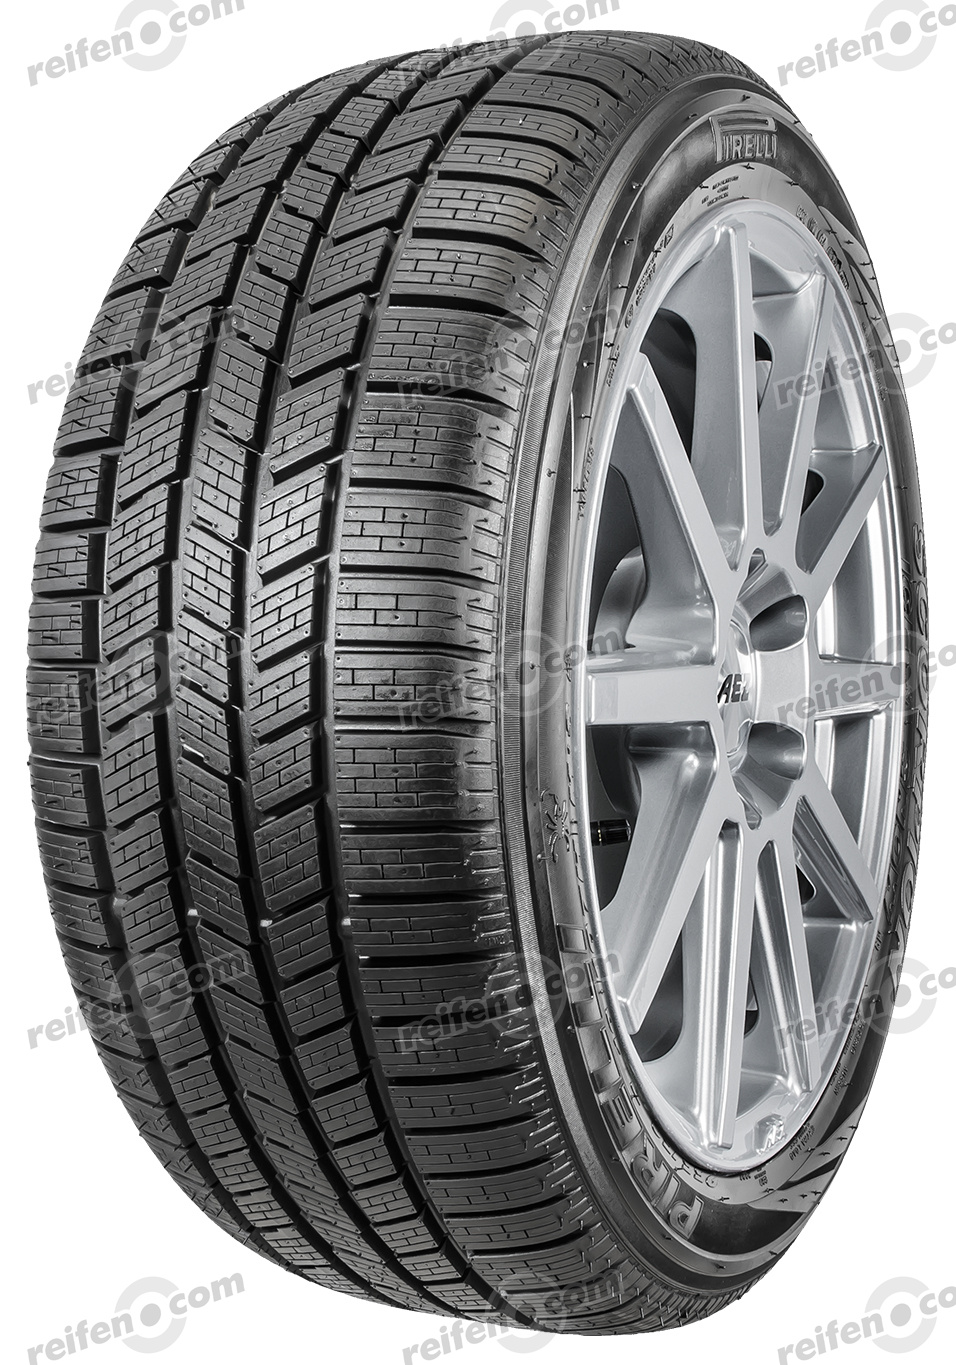 255/50 R19 107H Scorpion Ice & Snow XL MO RB  Scorpion Ice & Snow XL MO RB